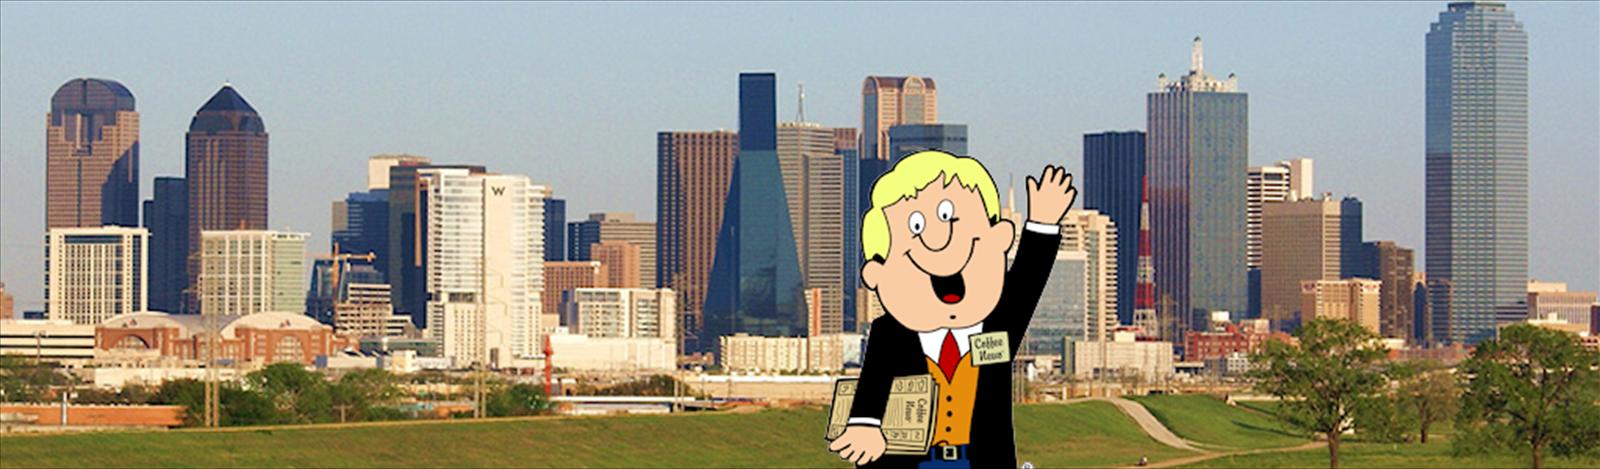 Welcome to Coffee News® of Tarrant County! Fun Reading...Serious Advertising